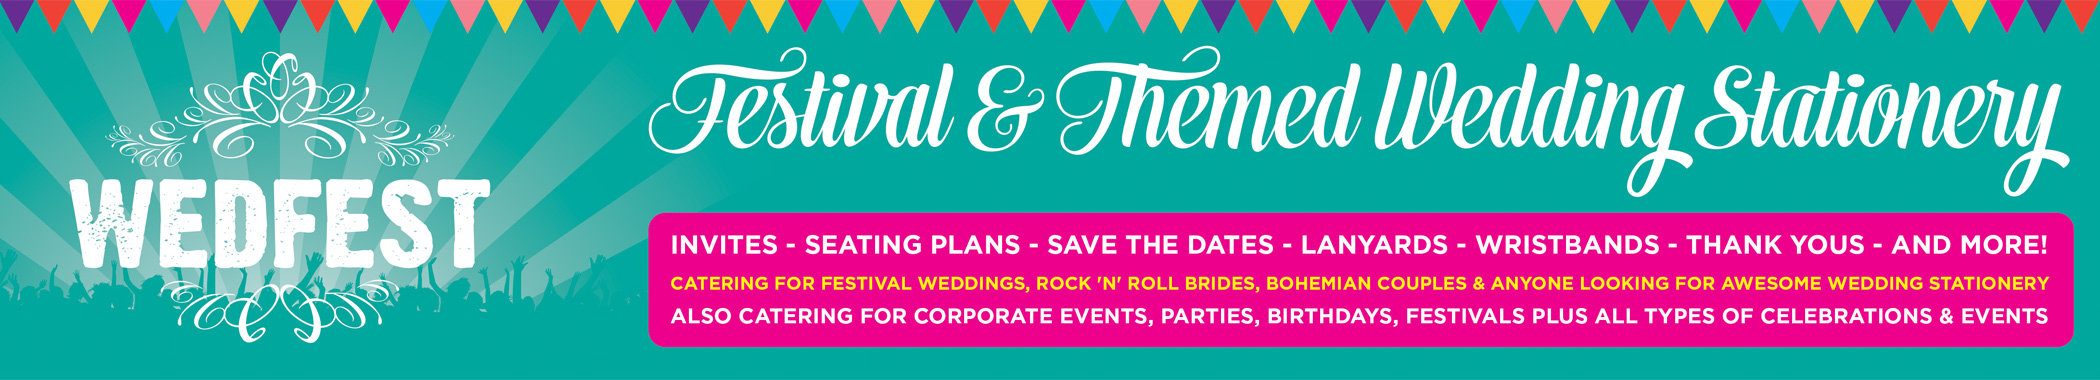 WEDFEST – Festival Themed Wedding Stationery